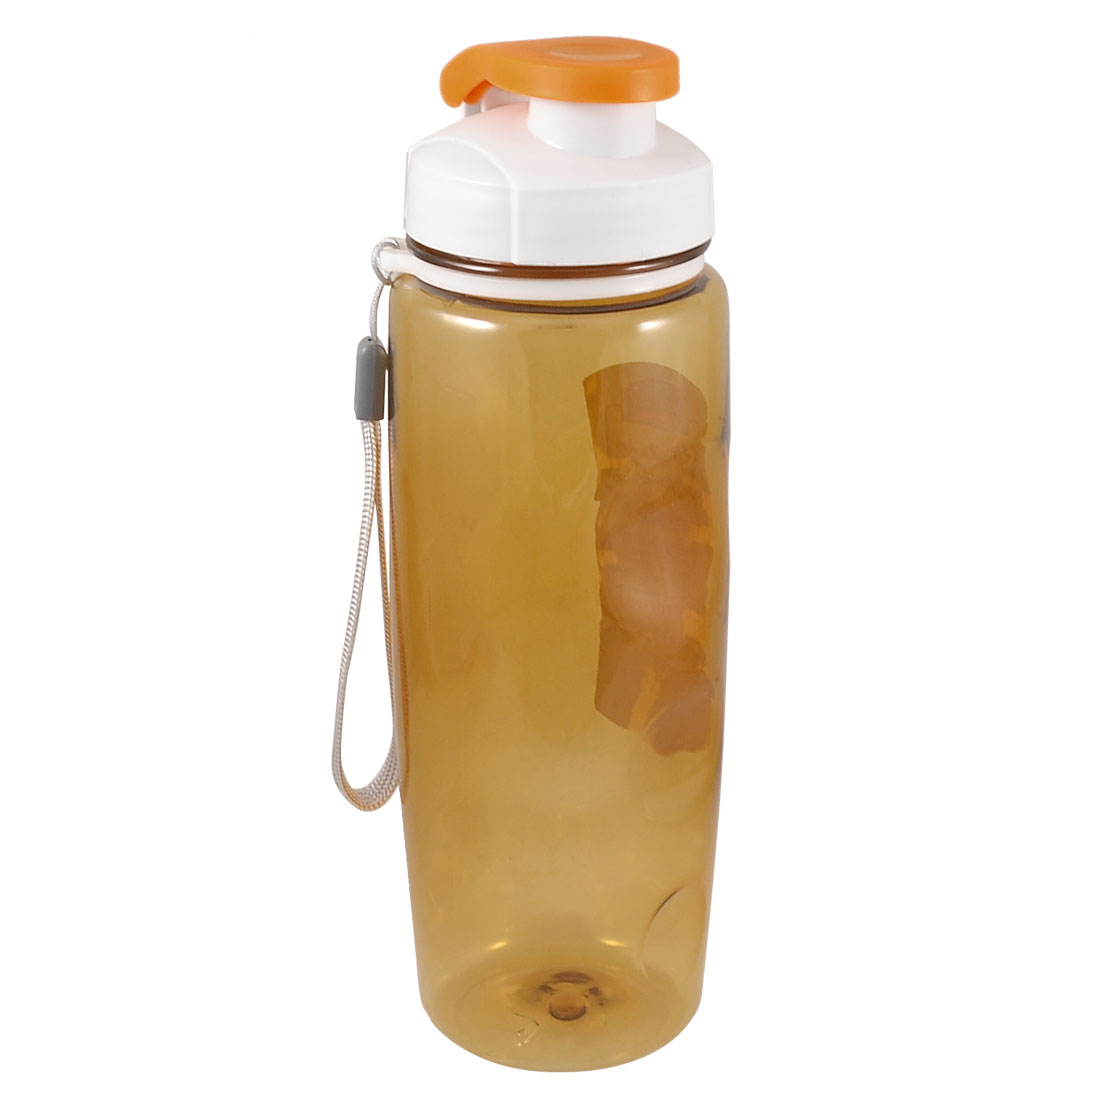 700ML Clear Brown Plastic Leakproof Drinking Holder Water Bottle w Strap